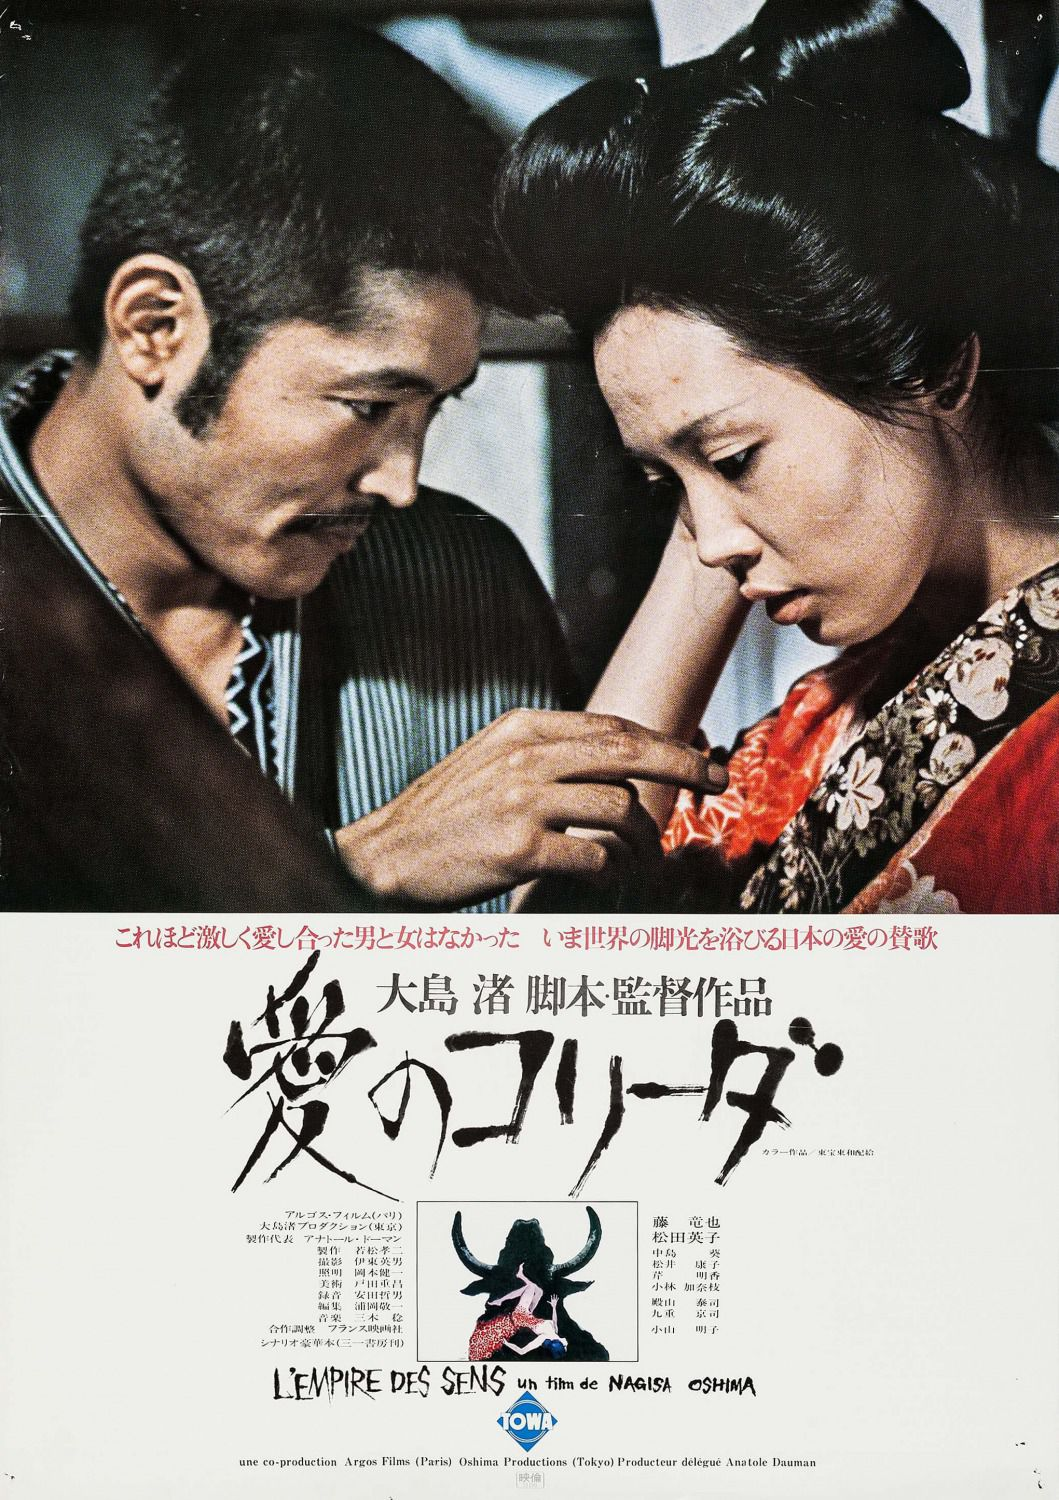 Ai no Korida - In the Realm of the Senses - film poster 1976